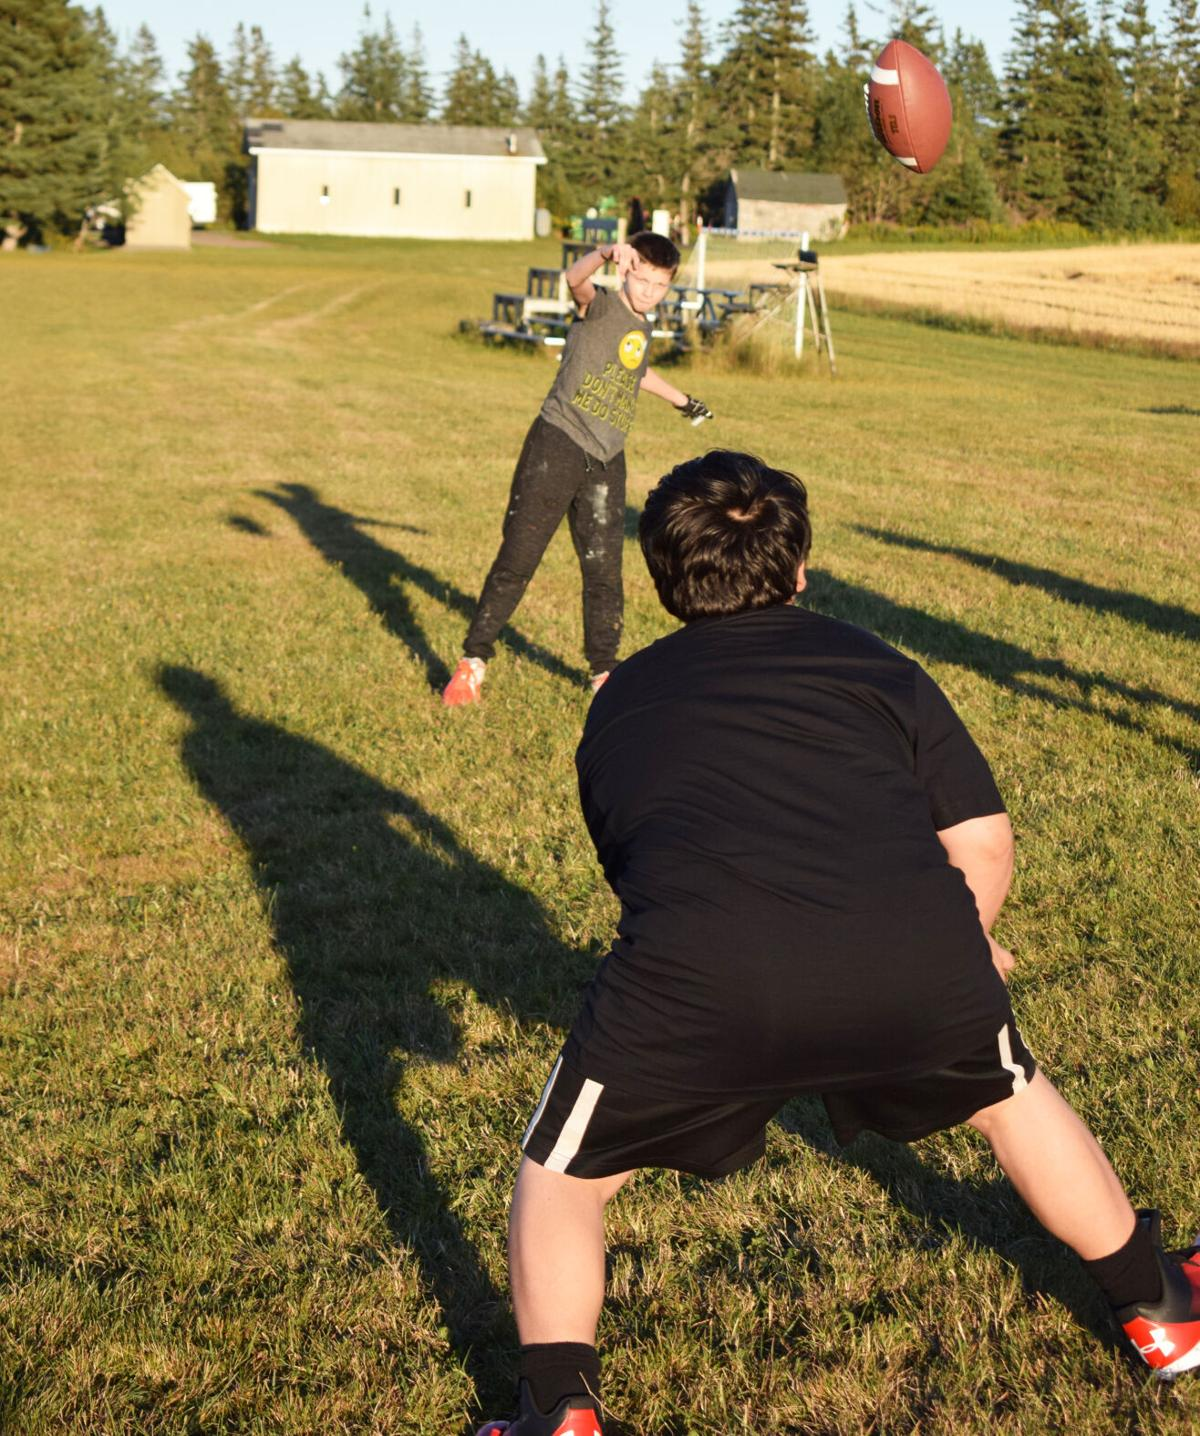 Tackle football practice